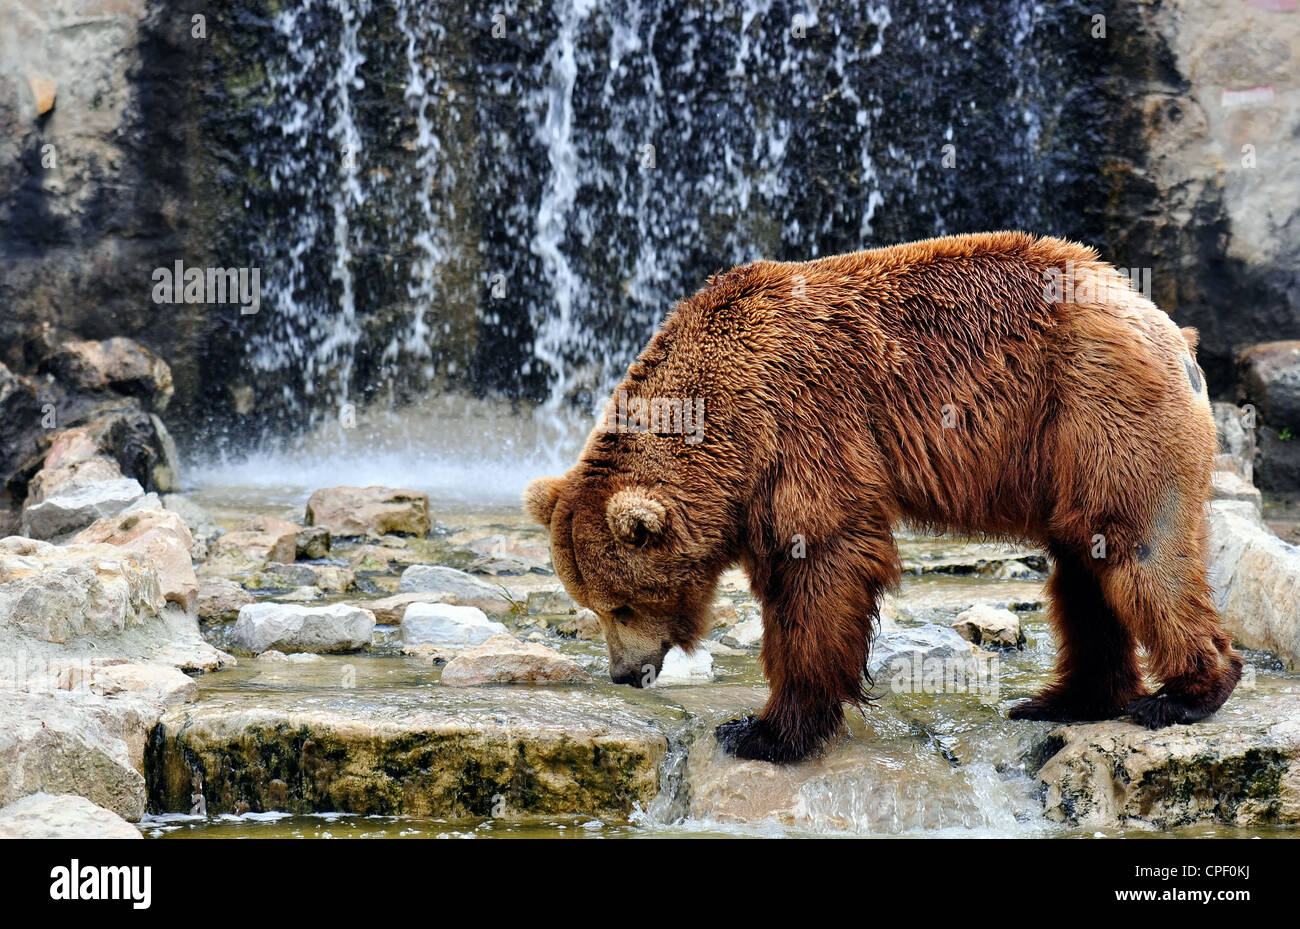 Brown bear (Ursus arctos) is a large bear distributed across much of northern Eurasia and North America - Stock Image